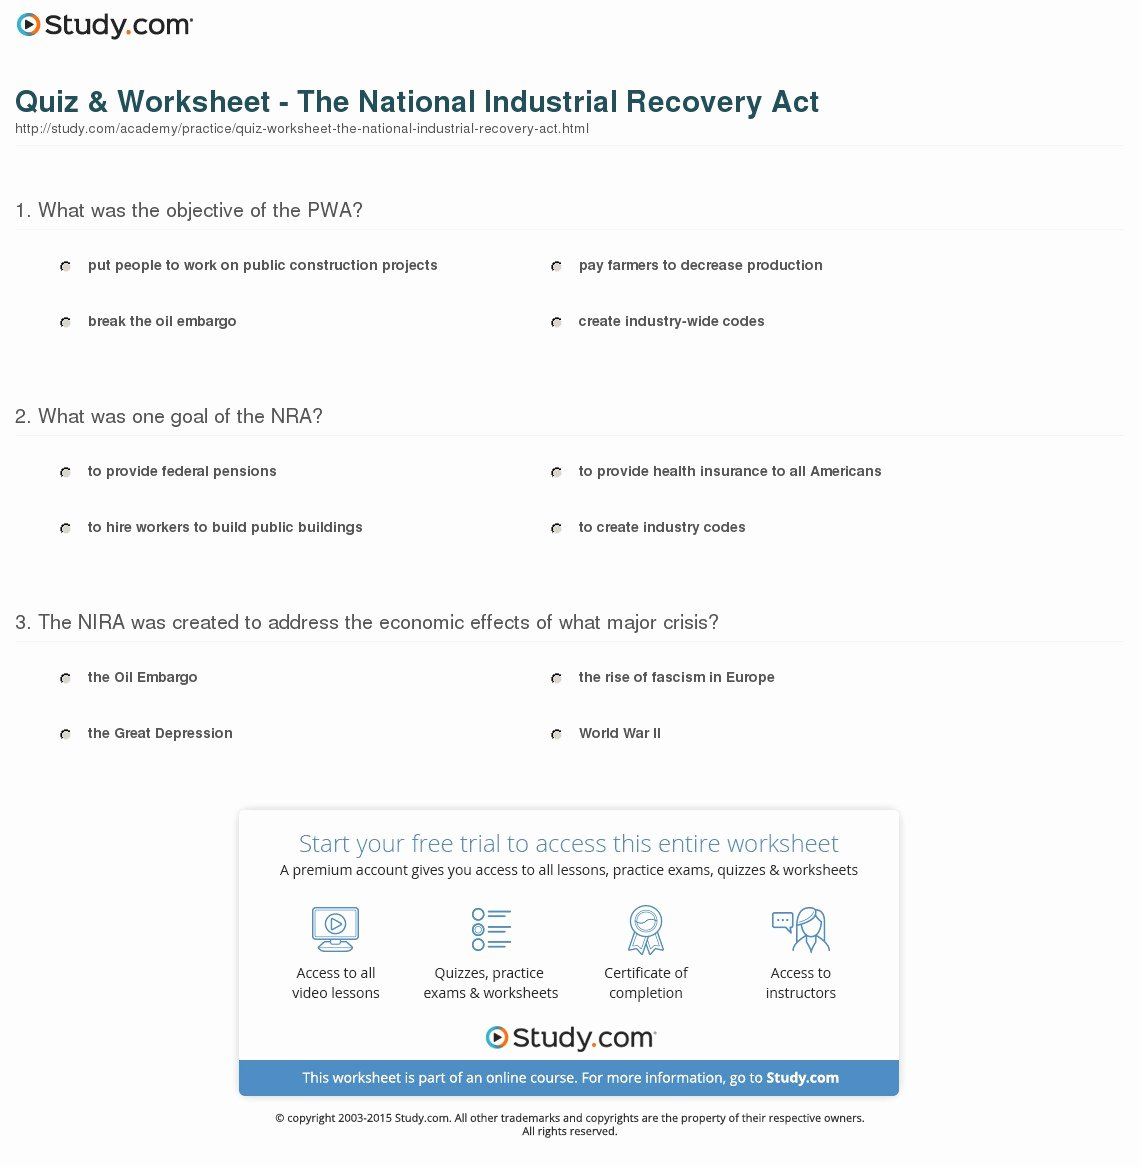 Global Wind Patterns Worksheet Unique Quiz & Worksheet the National Industrial Recovery Act